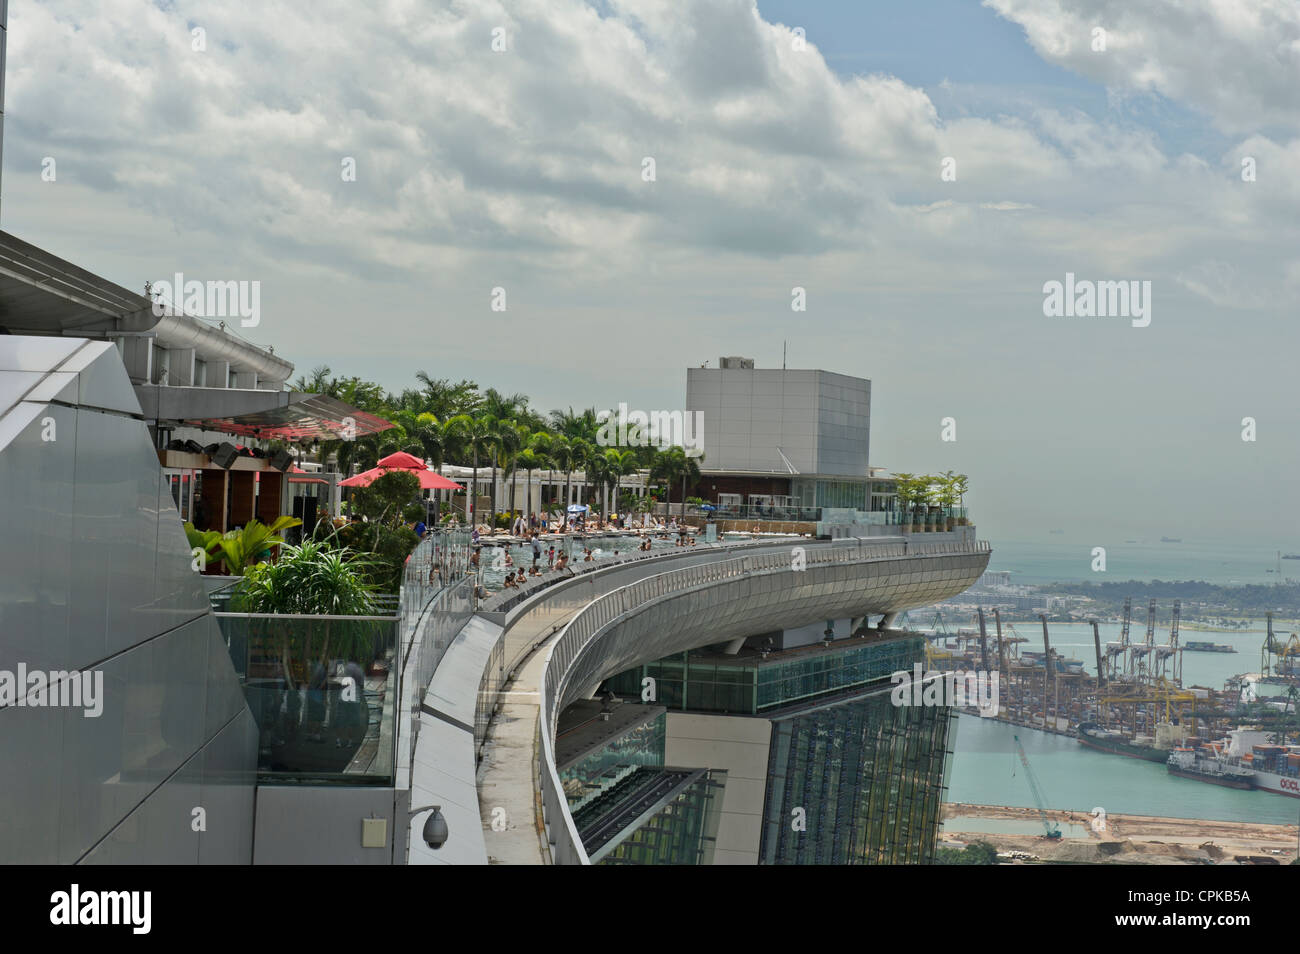 Swimming Pool On Skydeck Sands Hotel Singapore Stock Photo Royalty Free Image 48369030 Alamy